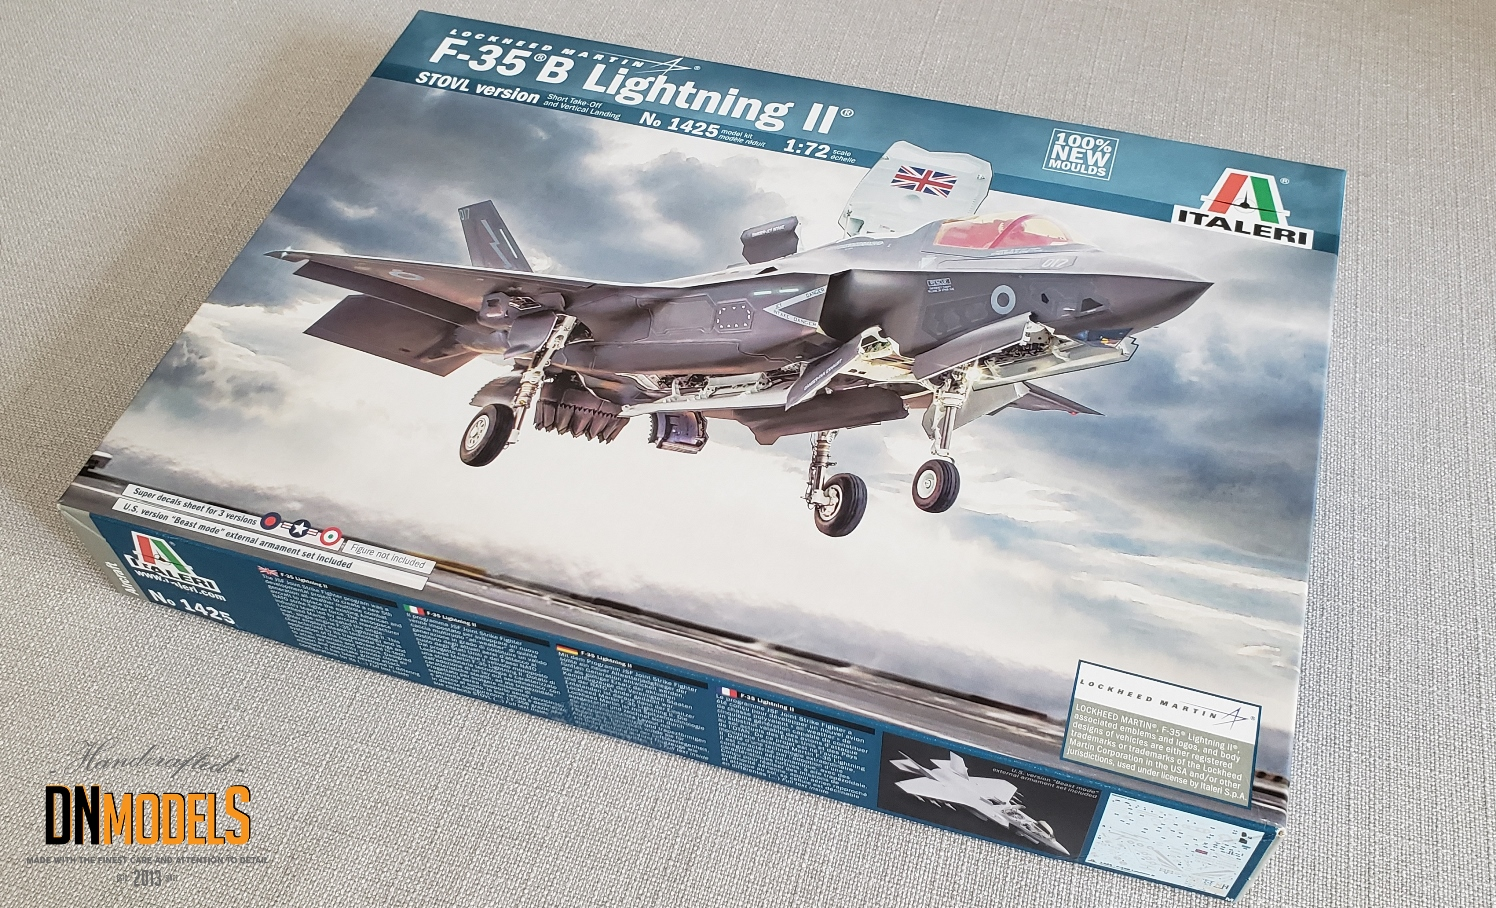 inbox review italeri revell tamiya 35b lightning ii 1/72 dn models masks for scale models